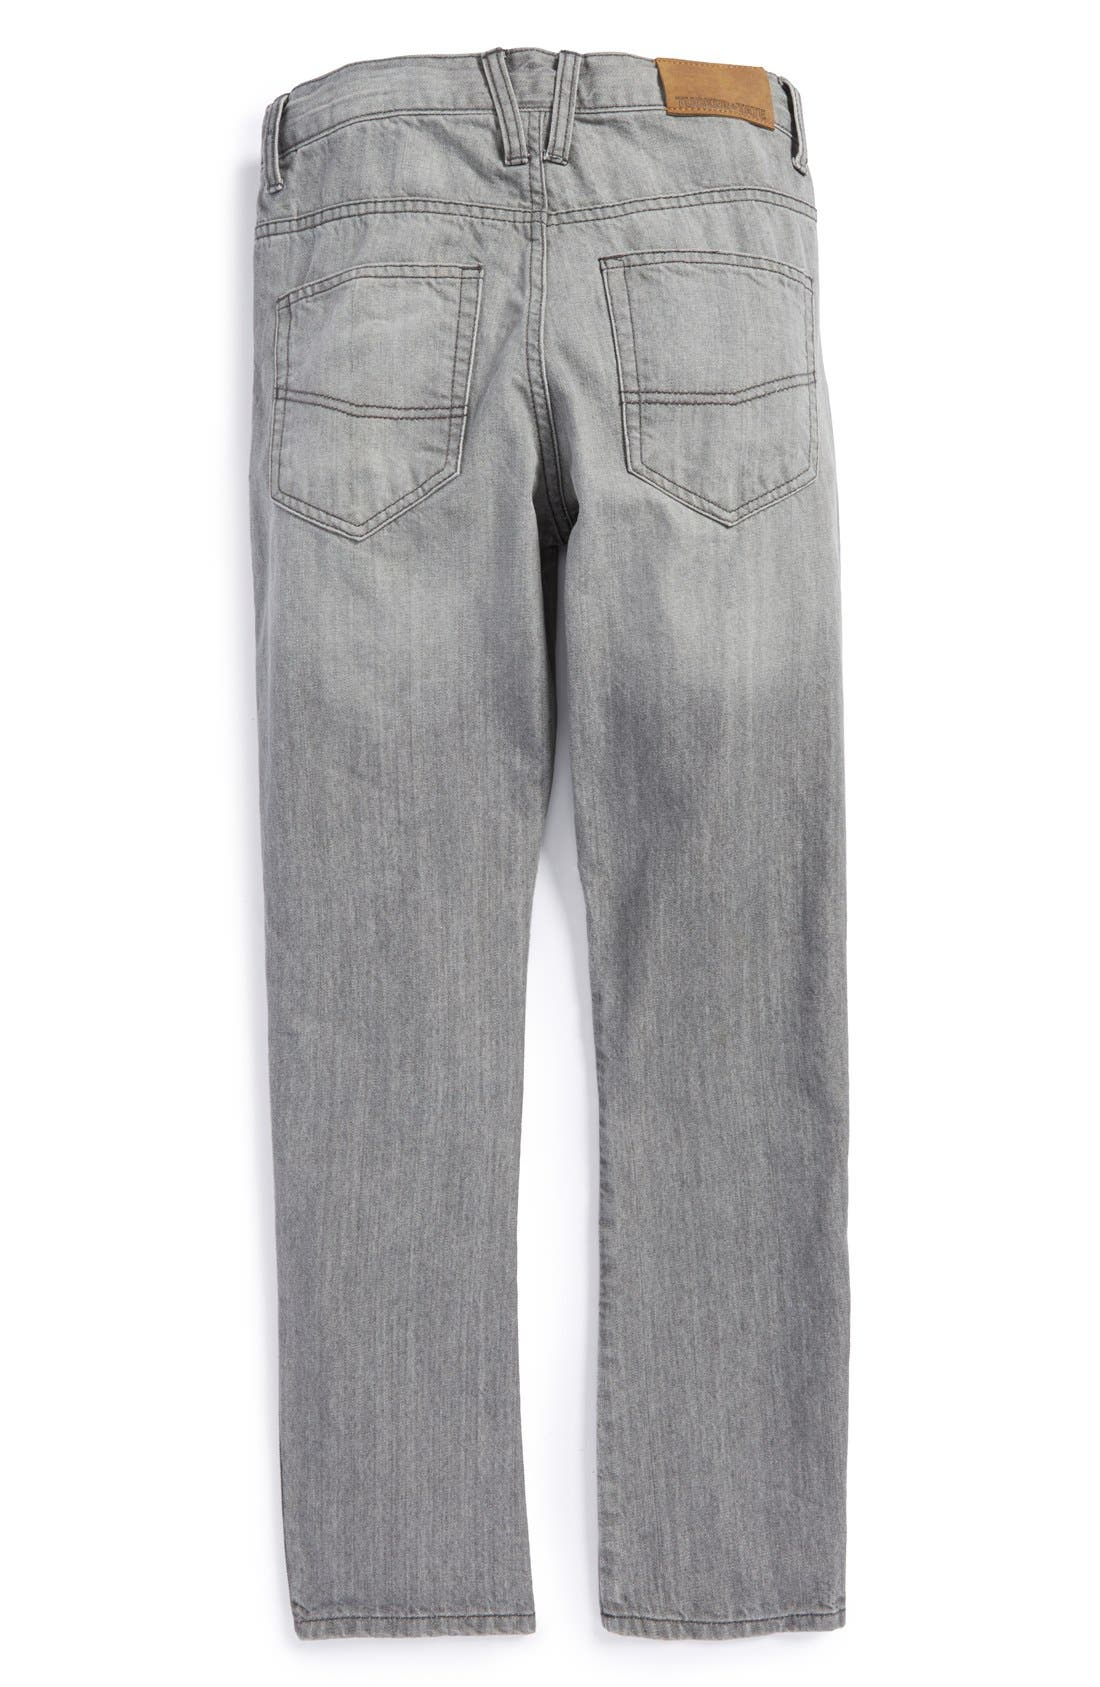 Alternate Image 1 Selected - Tucker + Tate 'Rocco' Skinny Jeans (Big Boys)